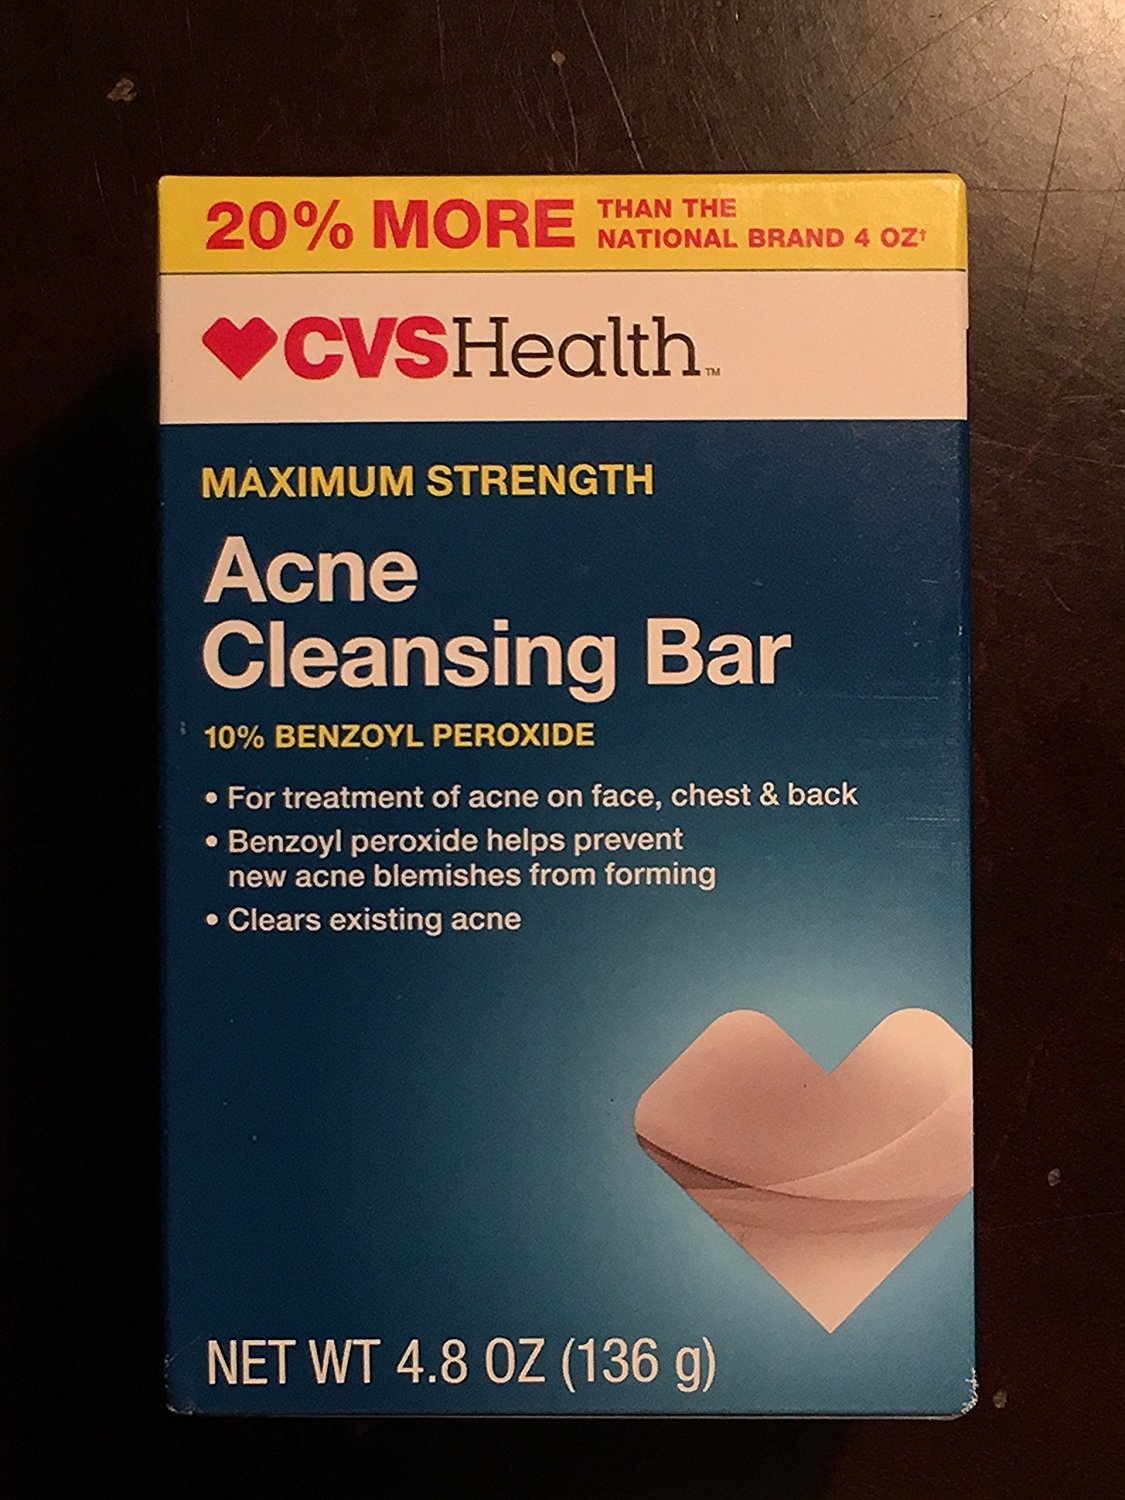 Acne Cleansing Bar Maximum Strength, 4.8 OZ, Compare to PanOxyl Bar 10% - 4 oz By CVS 5 Pack - Eucerin Original Healing Rich Creme, 16 Oz Each